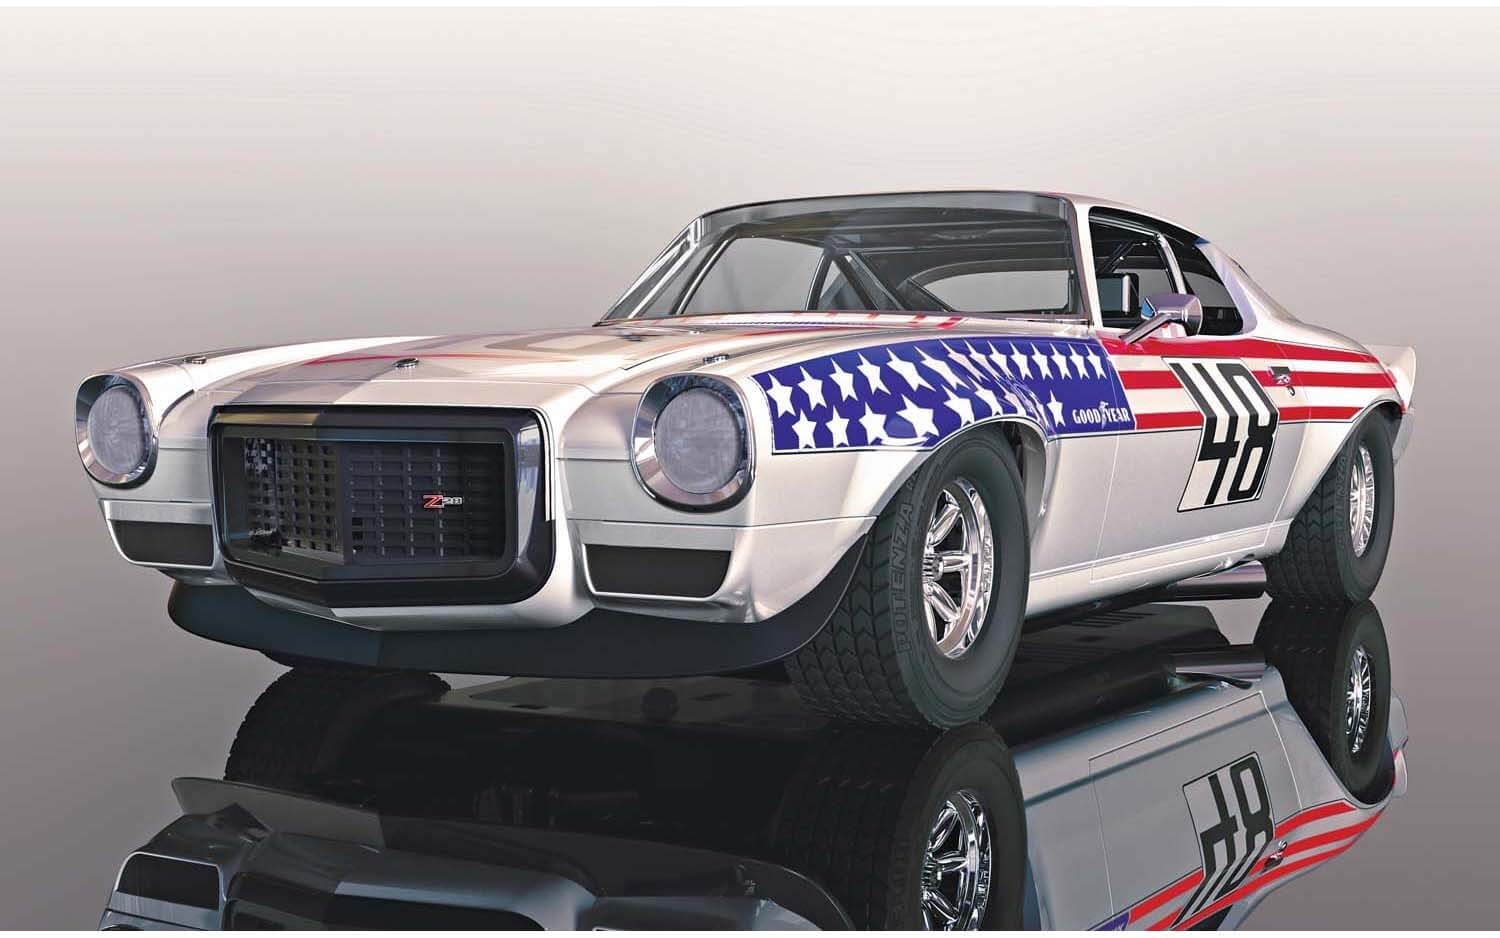 C4043 Scalextric Chevrolet Camaro, Stars N Stripes